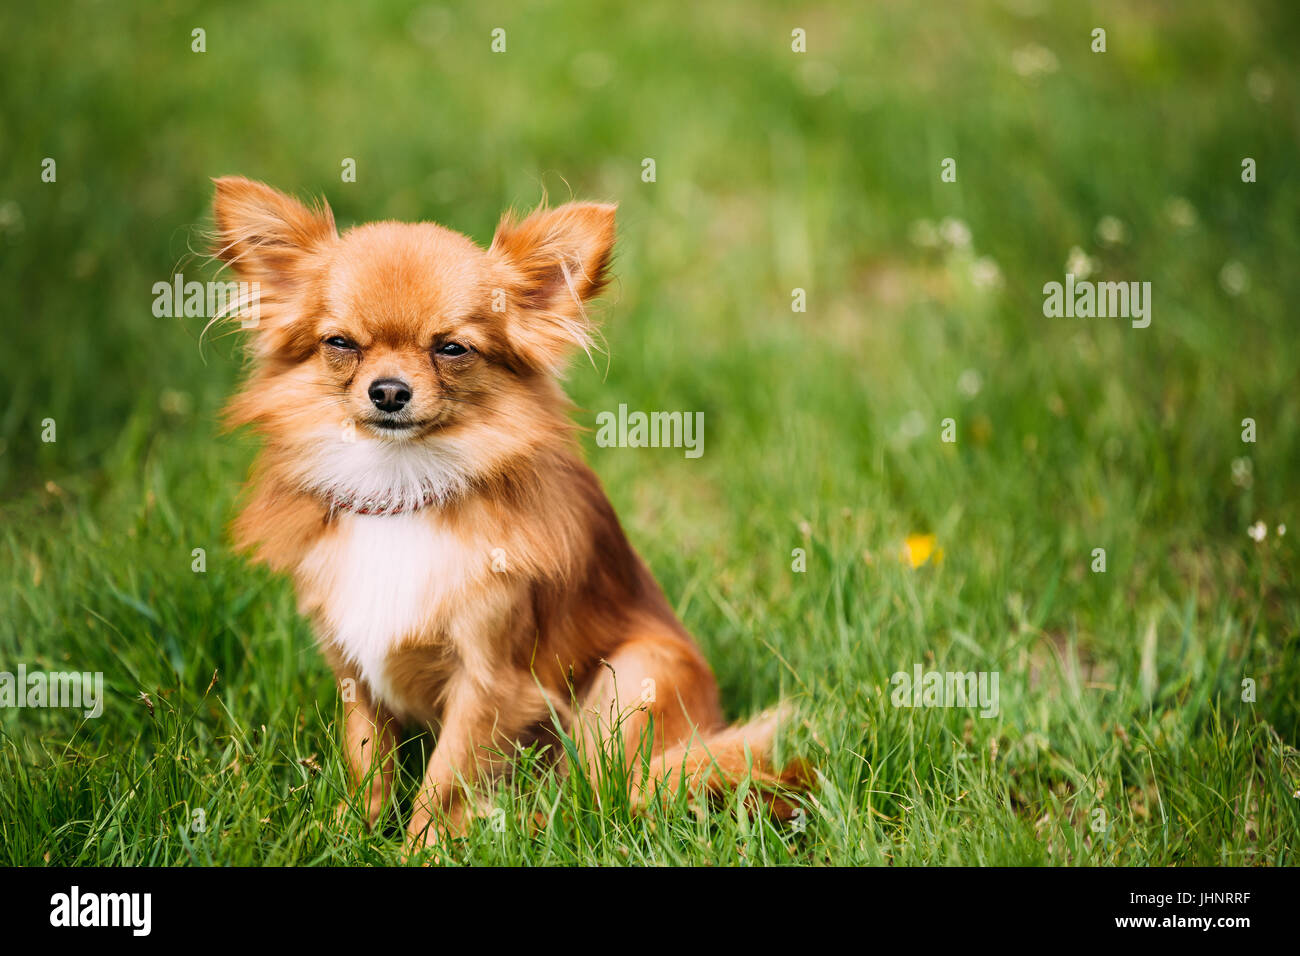 Beautiful Funny Young Red Brown And White Chihuahua Dog Sitting On Fresh Green Grass. Summer Season - Stock Image